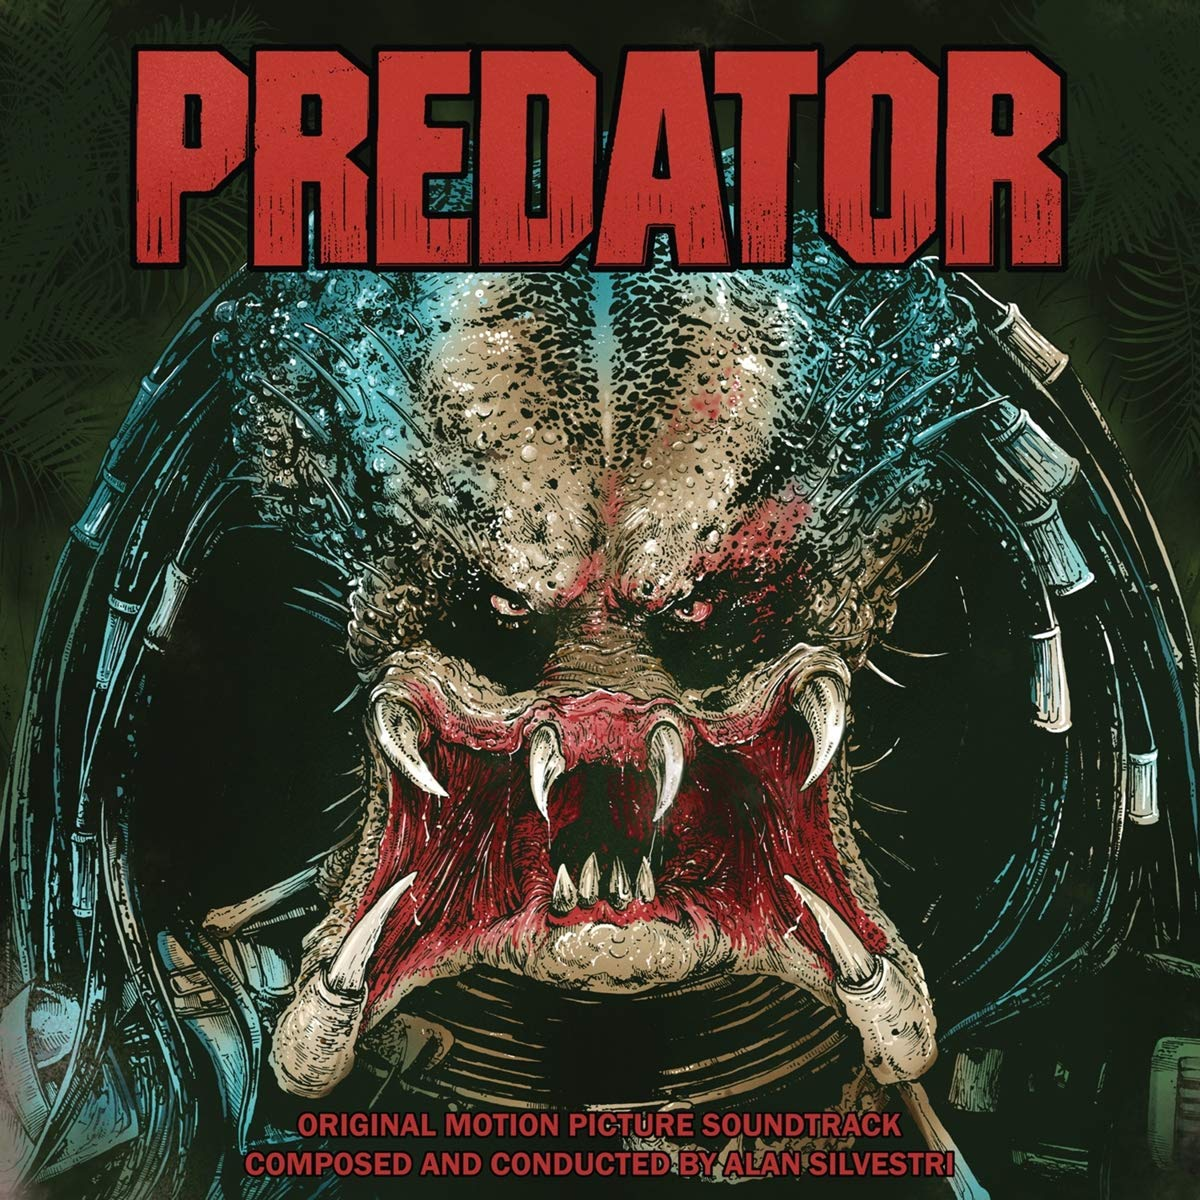 Alan Silvestri - Predator (Soundtrack) [2LP] (Blood Red With Neon Green Predator Blood Splatter Vinyl, illustrated cover art, gatefold, limited) - Urban Vinyl | Records, Headphones, and more.